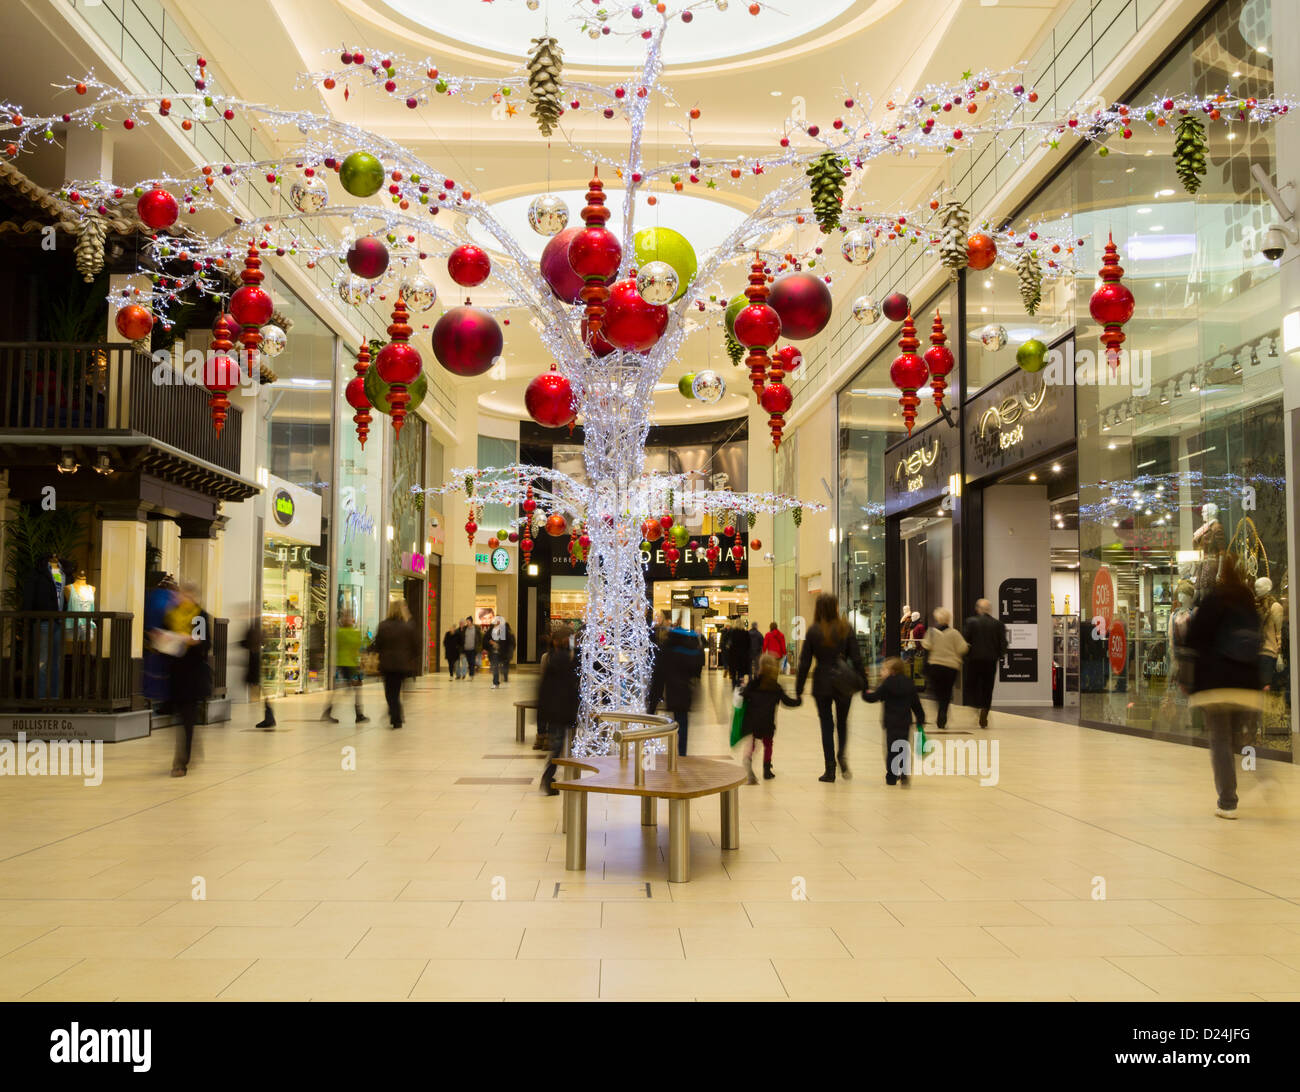 Where the Spirit of Christmas is Forever; Forever Christmas Newcastles Biggest Christmas store carrying the largest range of decorations and gifts for every occasion. We also carry Newcastle's largest range of Hanging ornaments including Hand painted glass ornaments, Australian hanging ornament and decorations, Advents, Nativities, Angels.